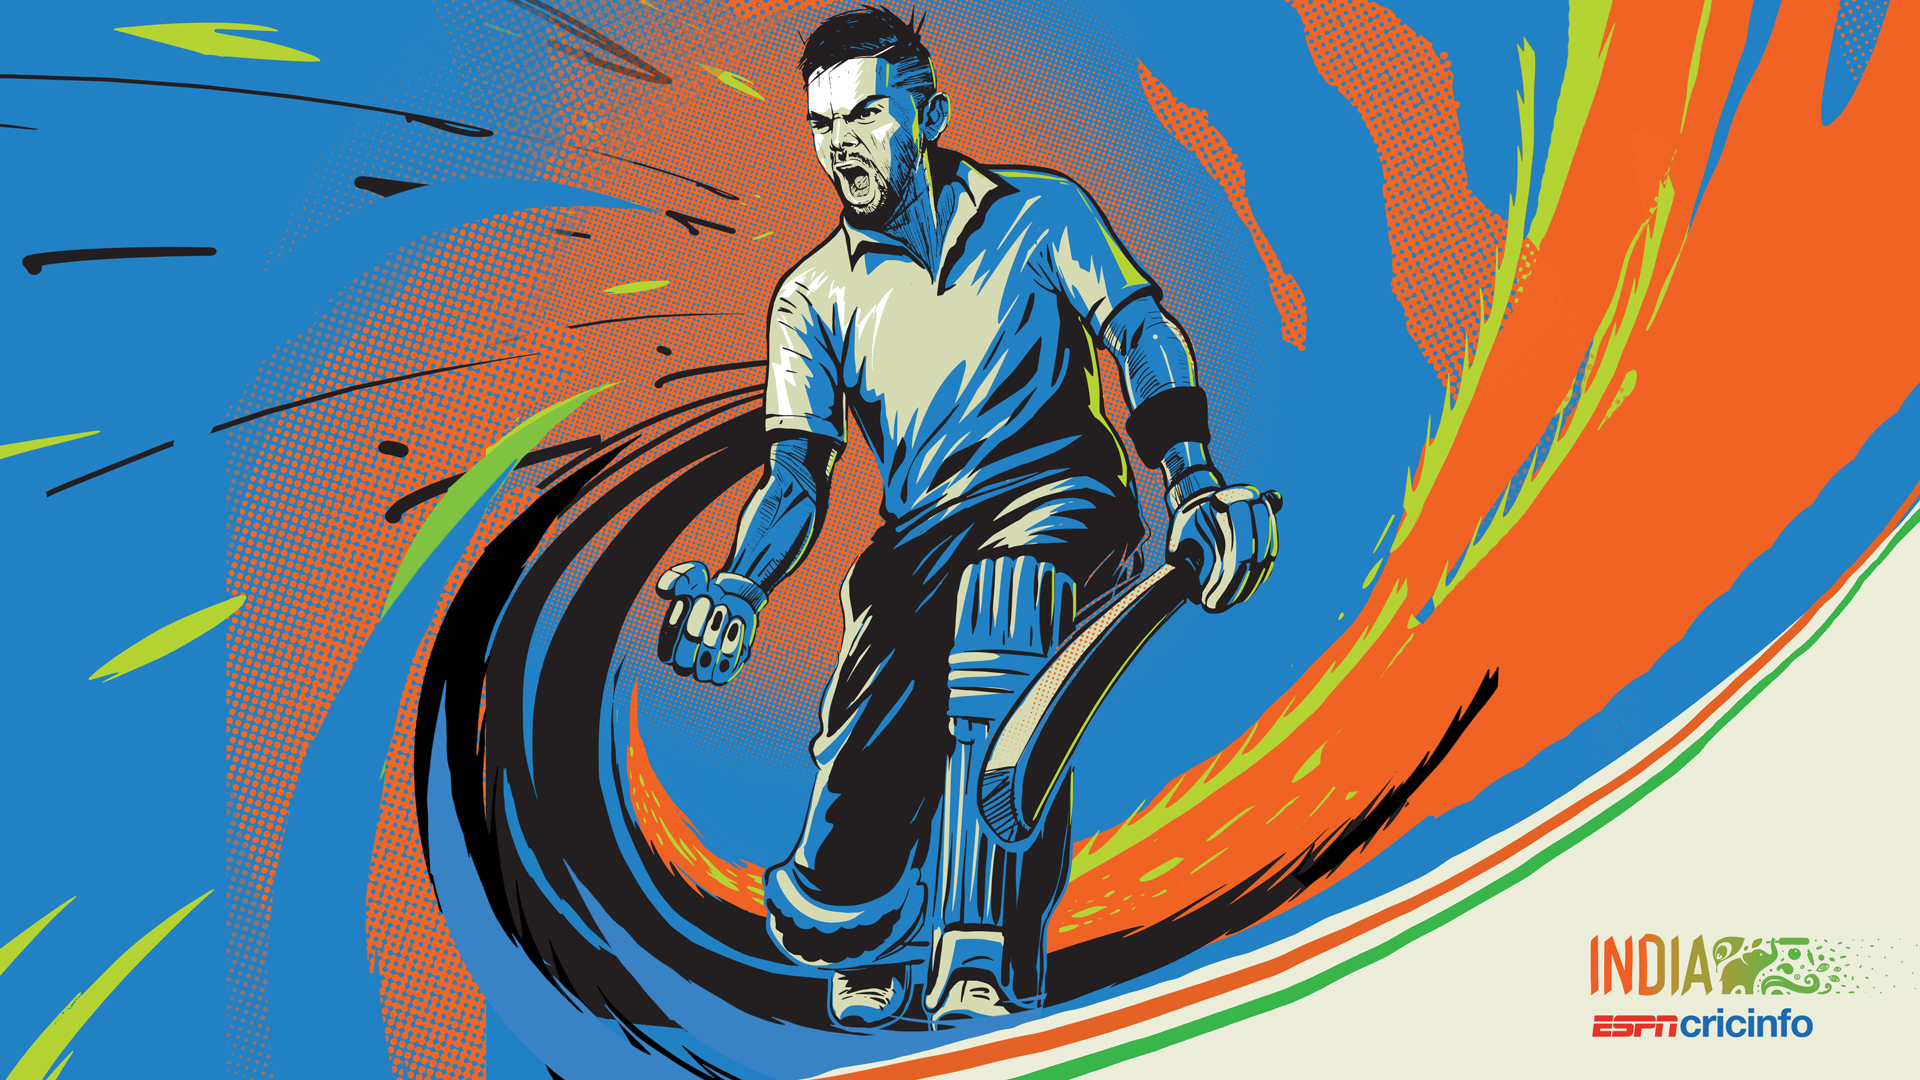 Indian Cricket Hd Wallpapers: Cricket Wallpapers